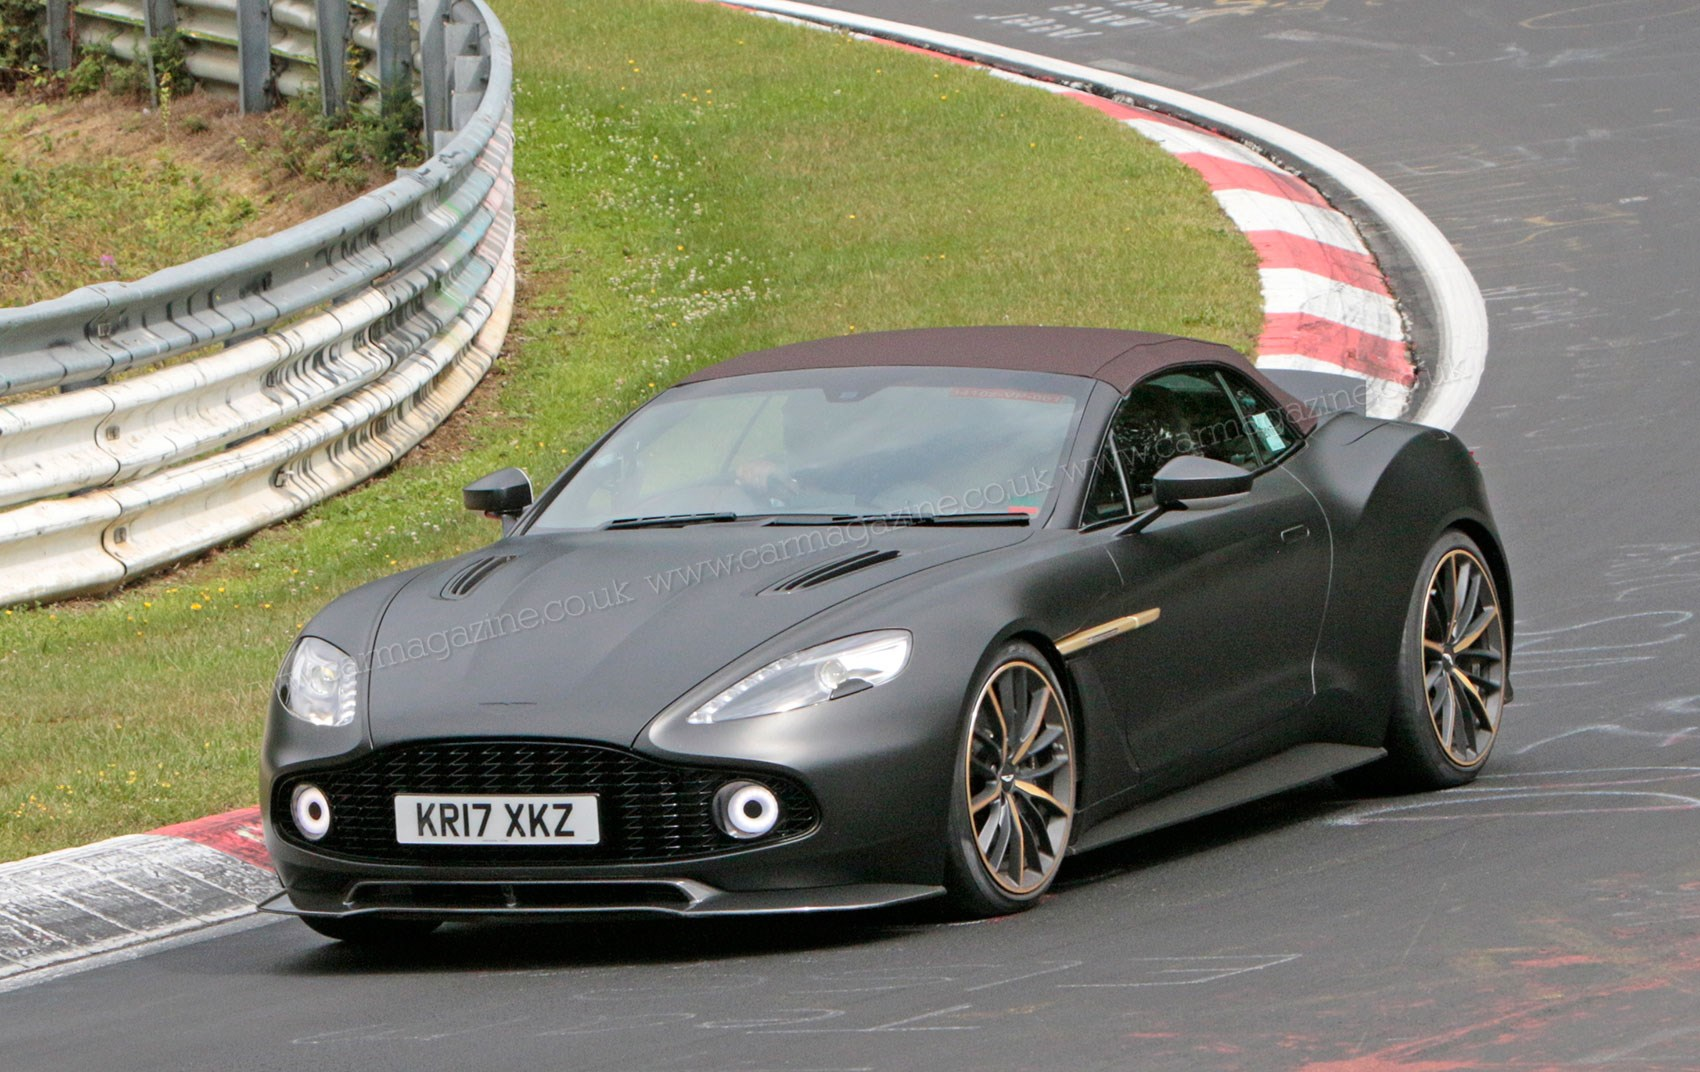 aston martin vanquish zagato volante and speedster 2018 spy photos